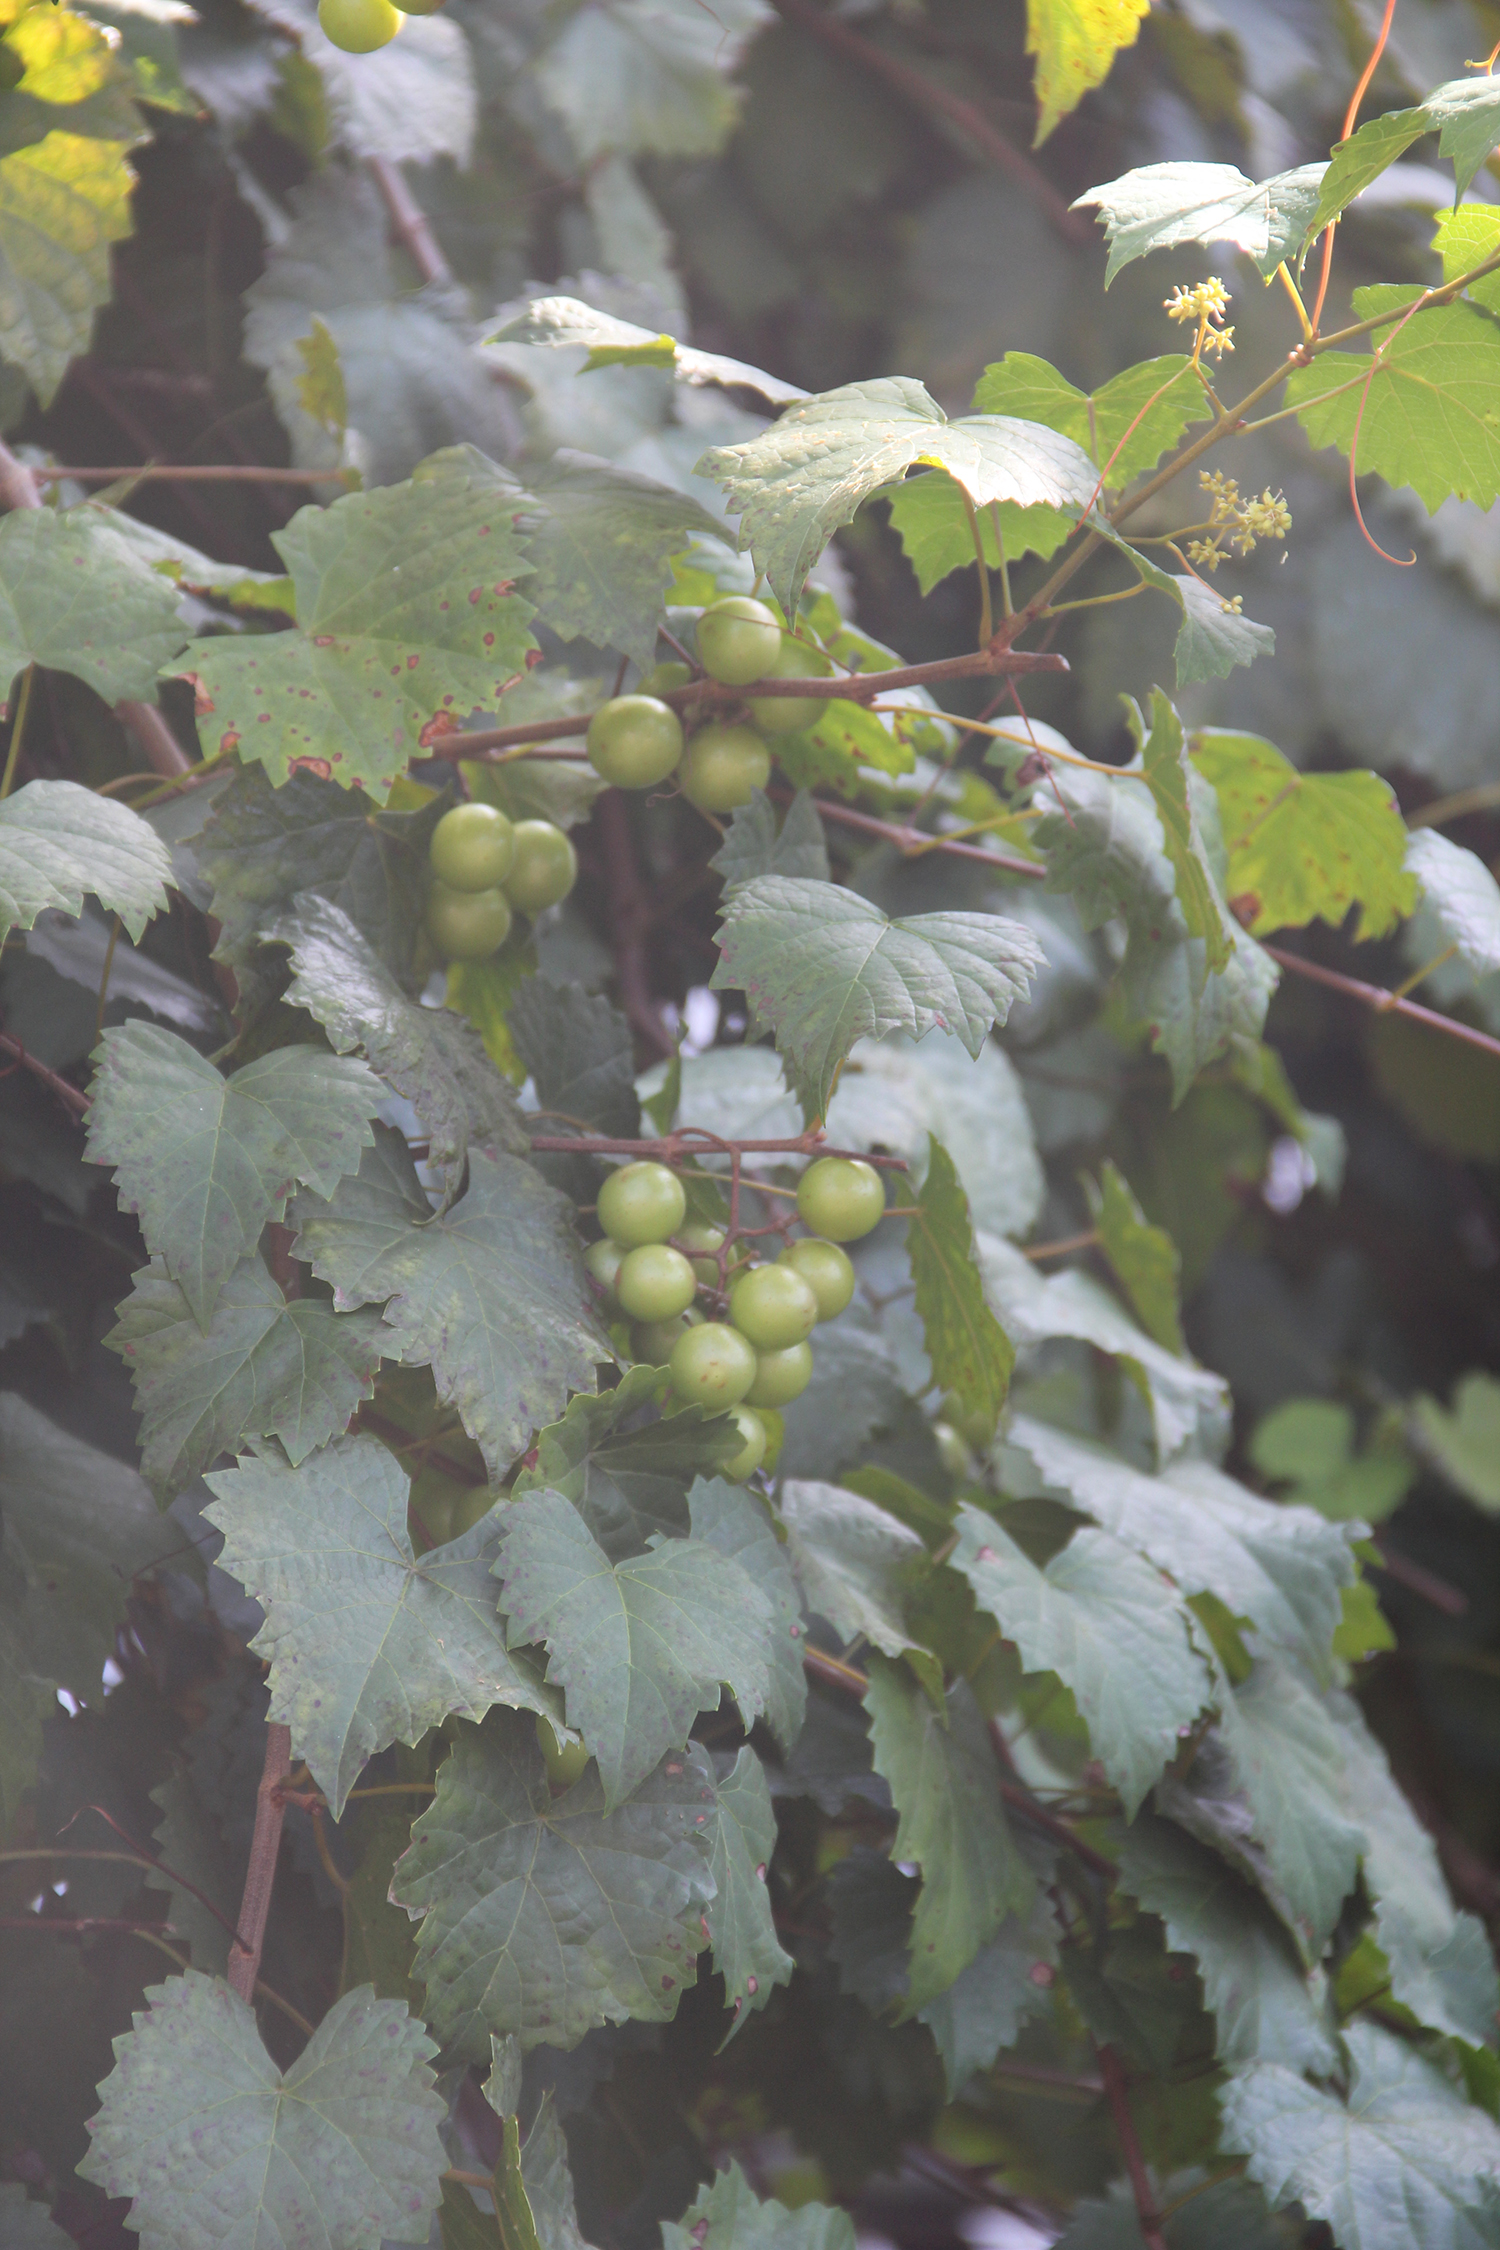 Native grapes such as muscadines are hardy and easy to grow here in Matthews.